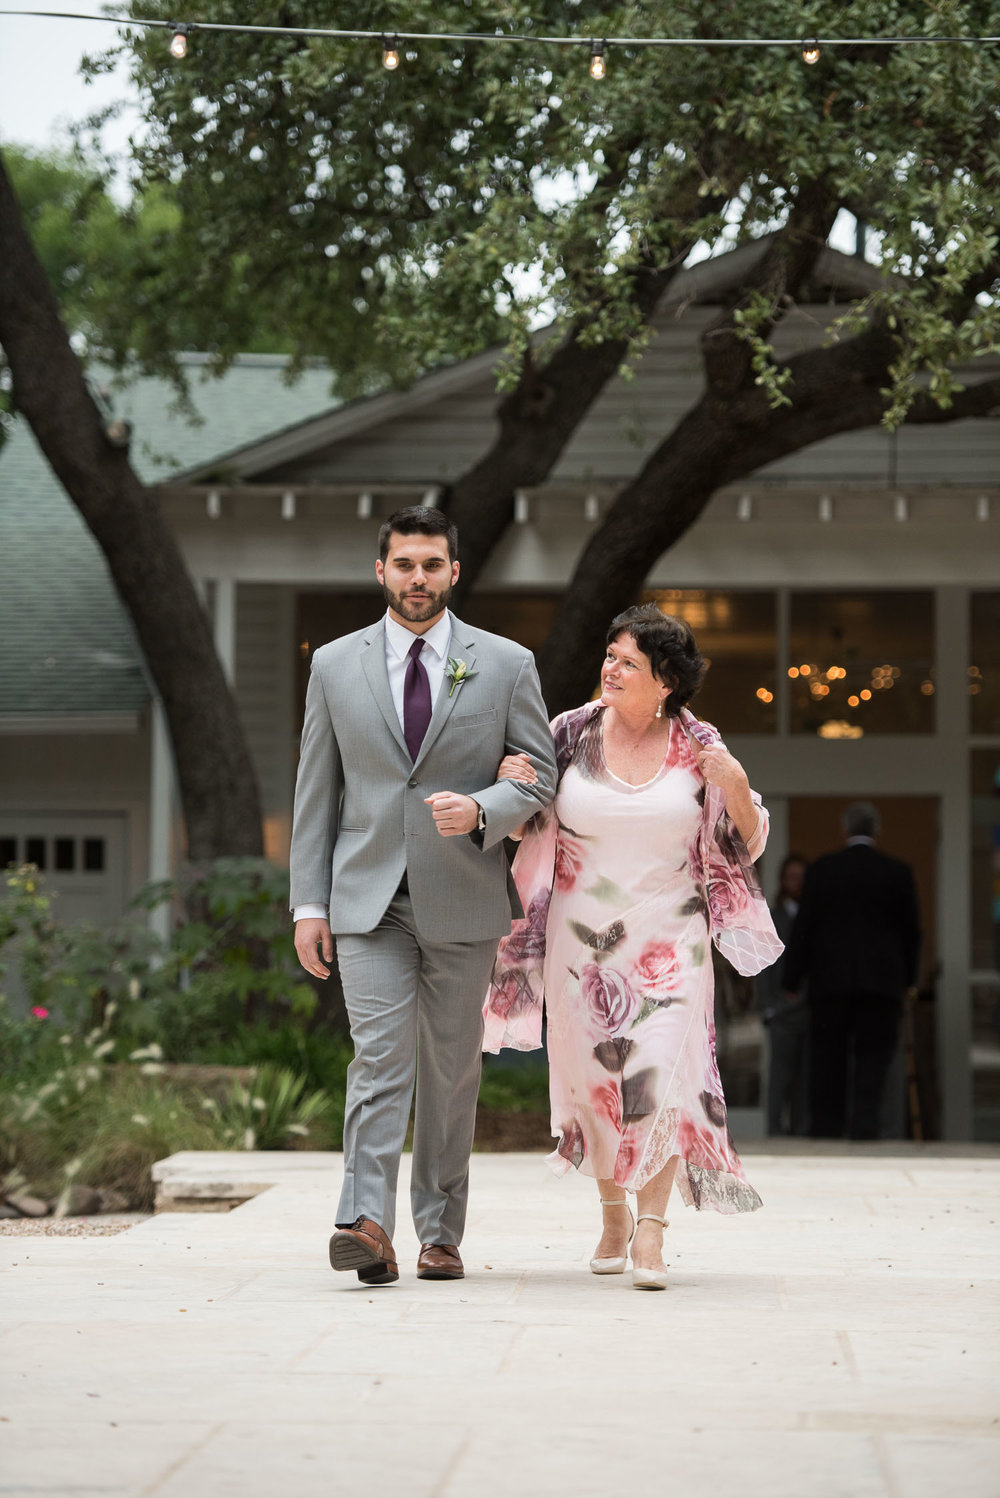 Alex and Austin Wedding Photography at Mercury Hall in Texas-67.jpg